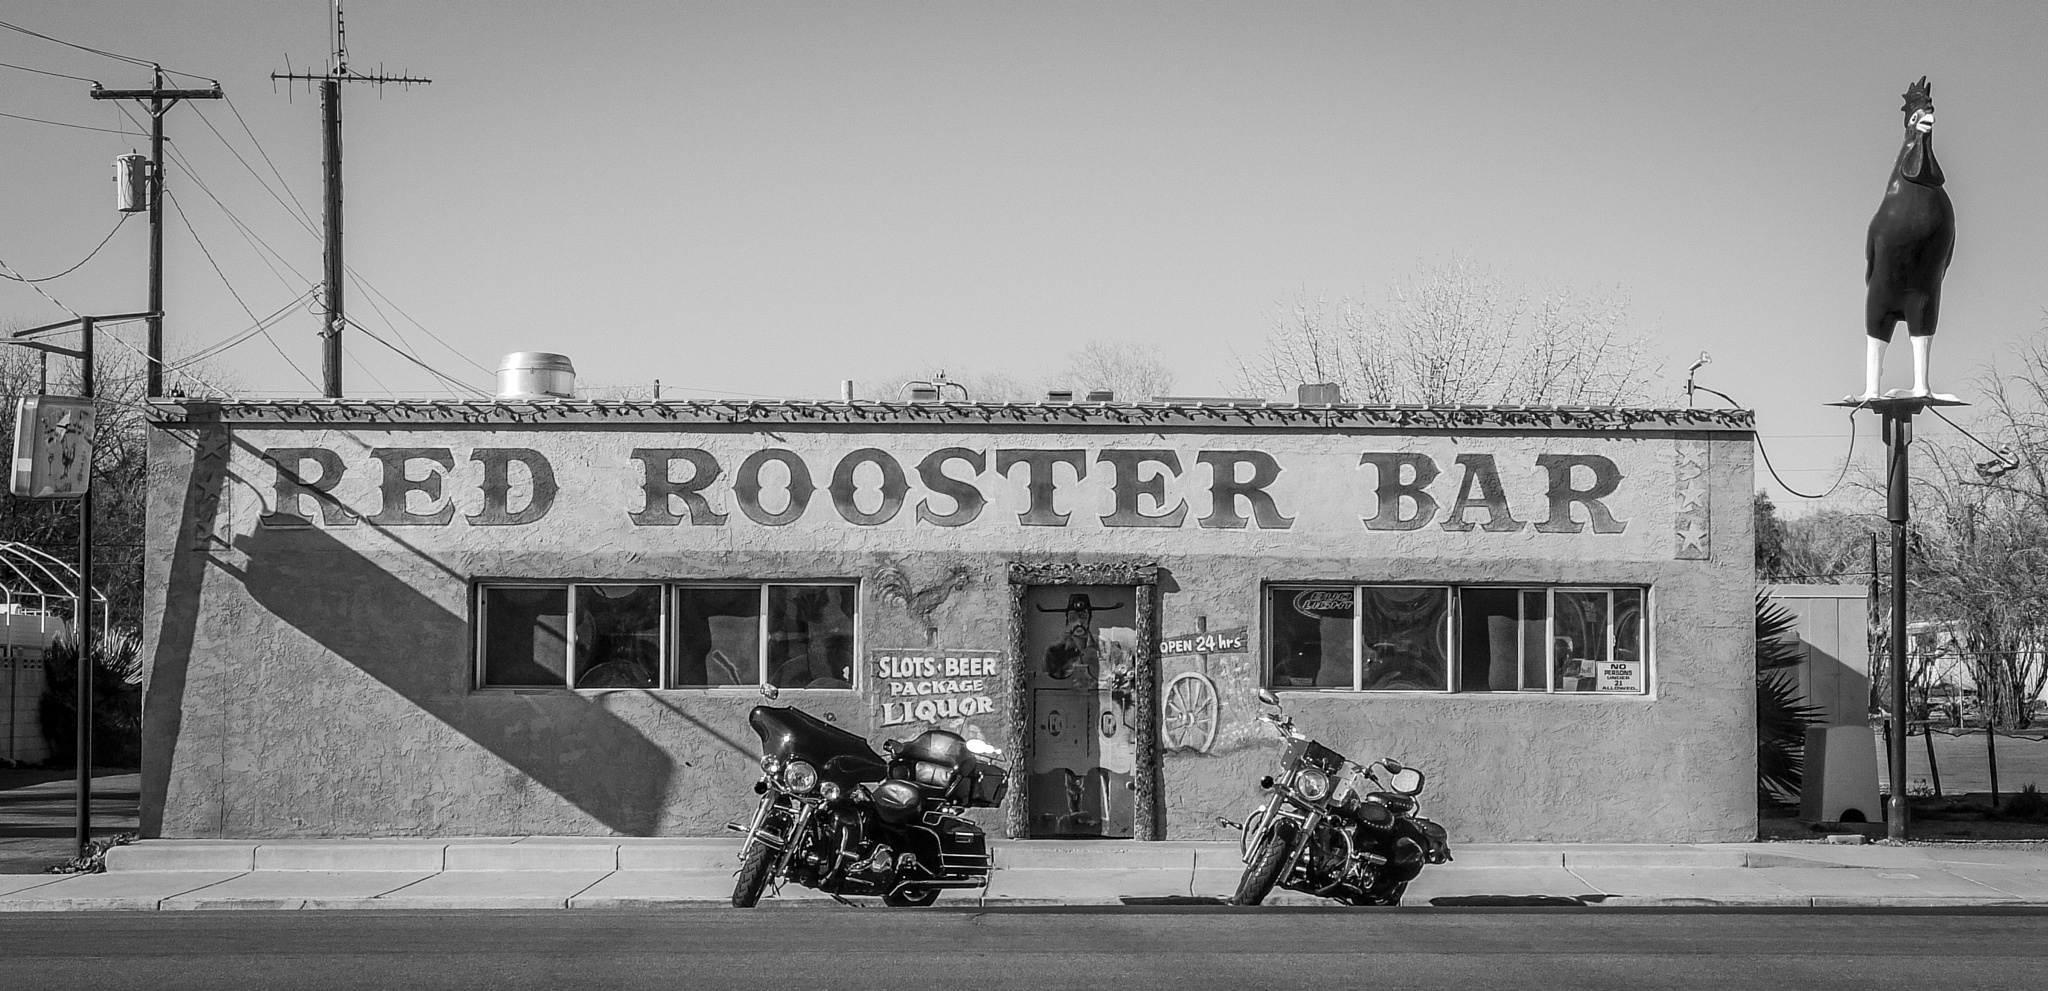 """""""Red Rooster Bar"""", Overton, Nevada 2012 by hbenkel"""